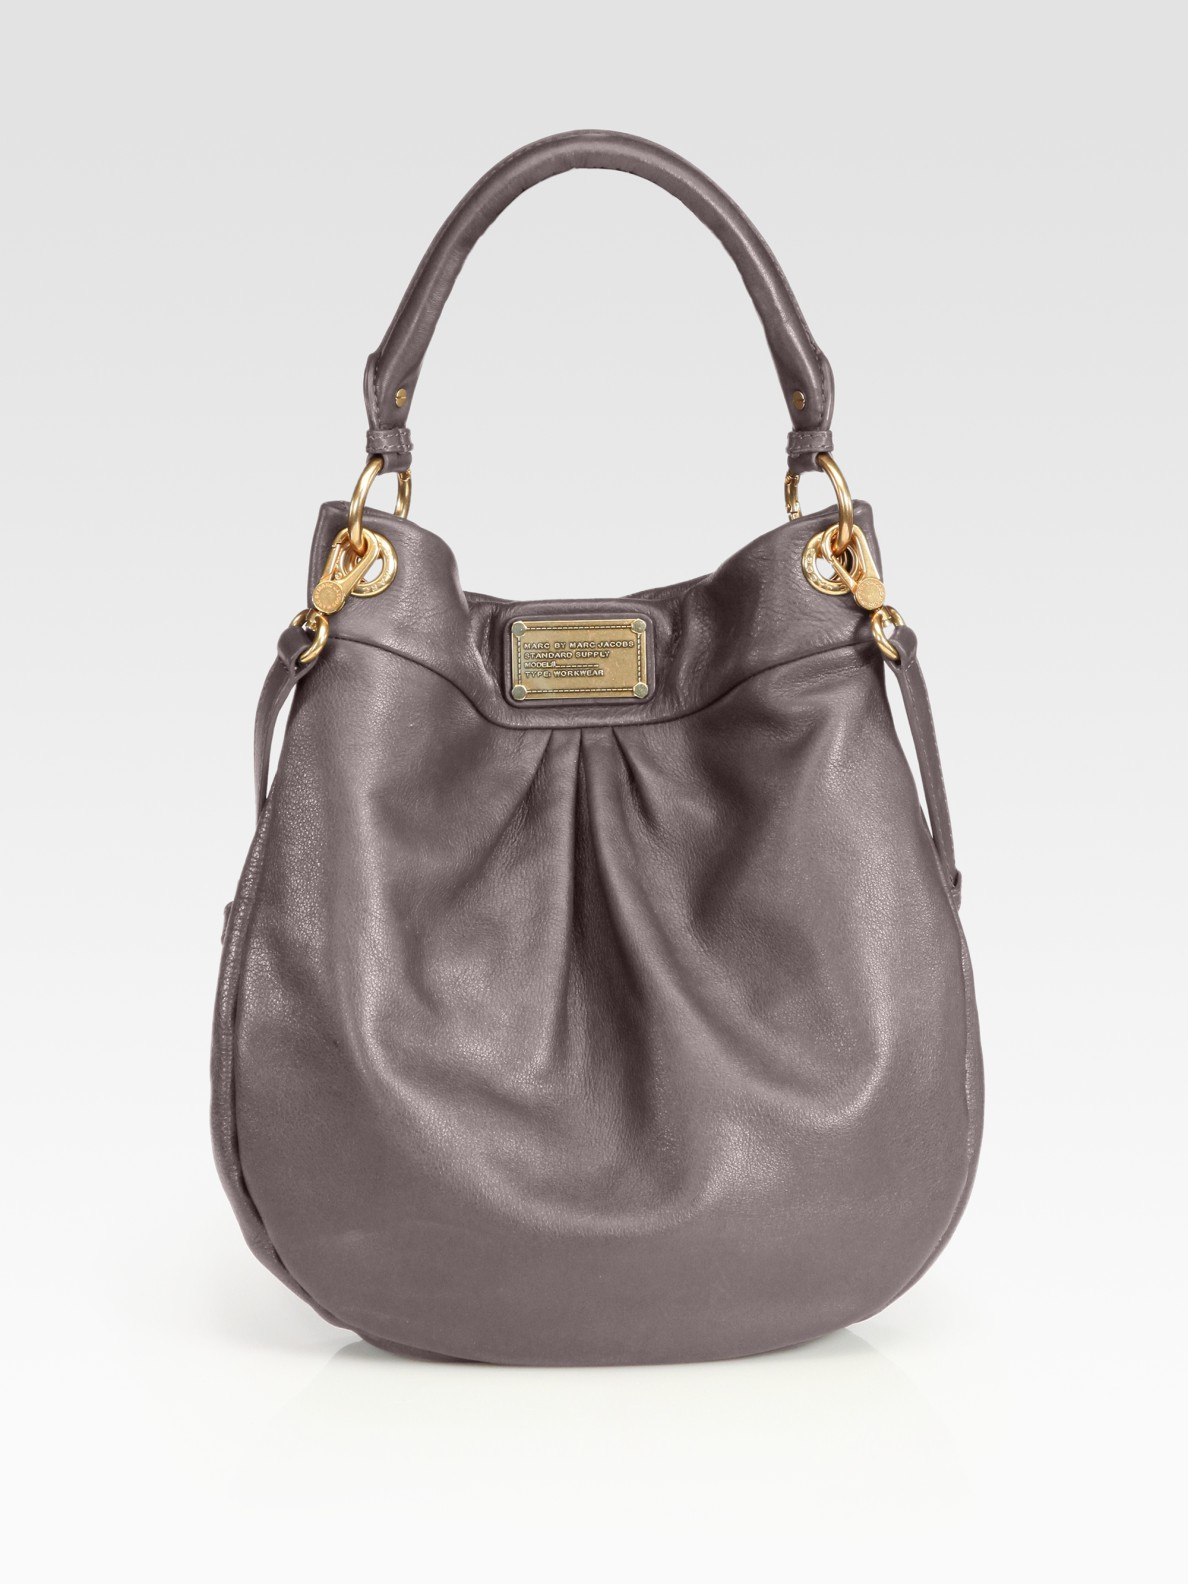 marc by marc jacobs classic q hillier hobo in brown espresso lyst. Black Bedroom Furniture Sets. Home Design Ideas